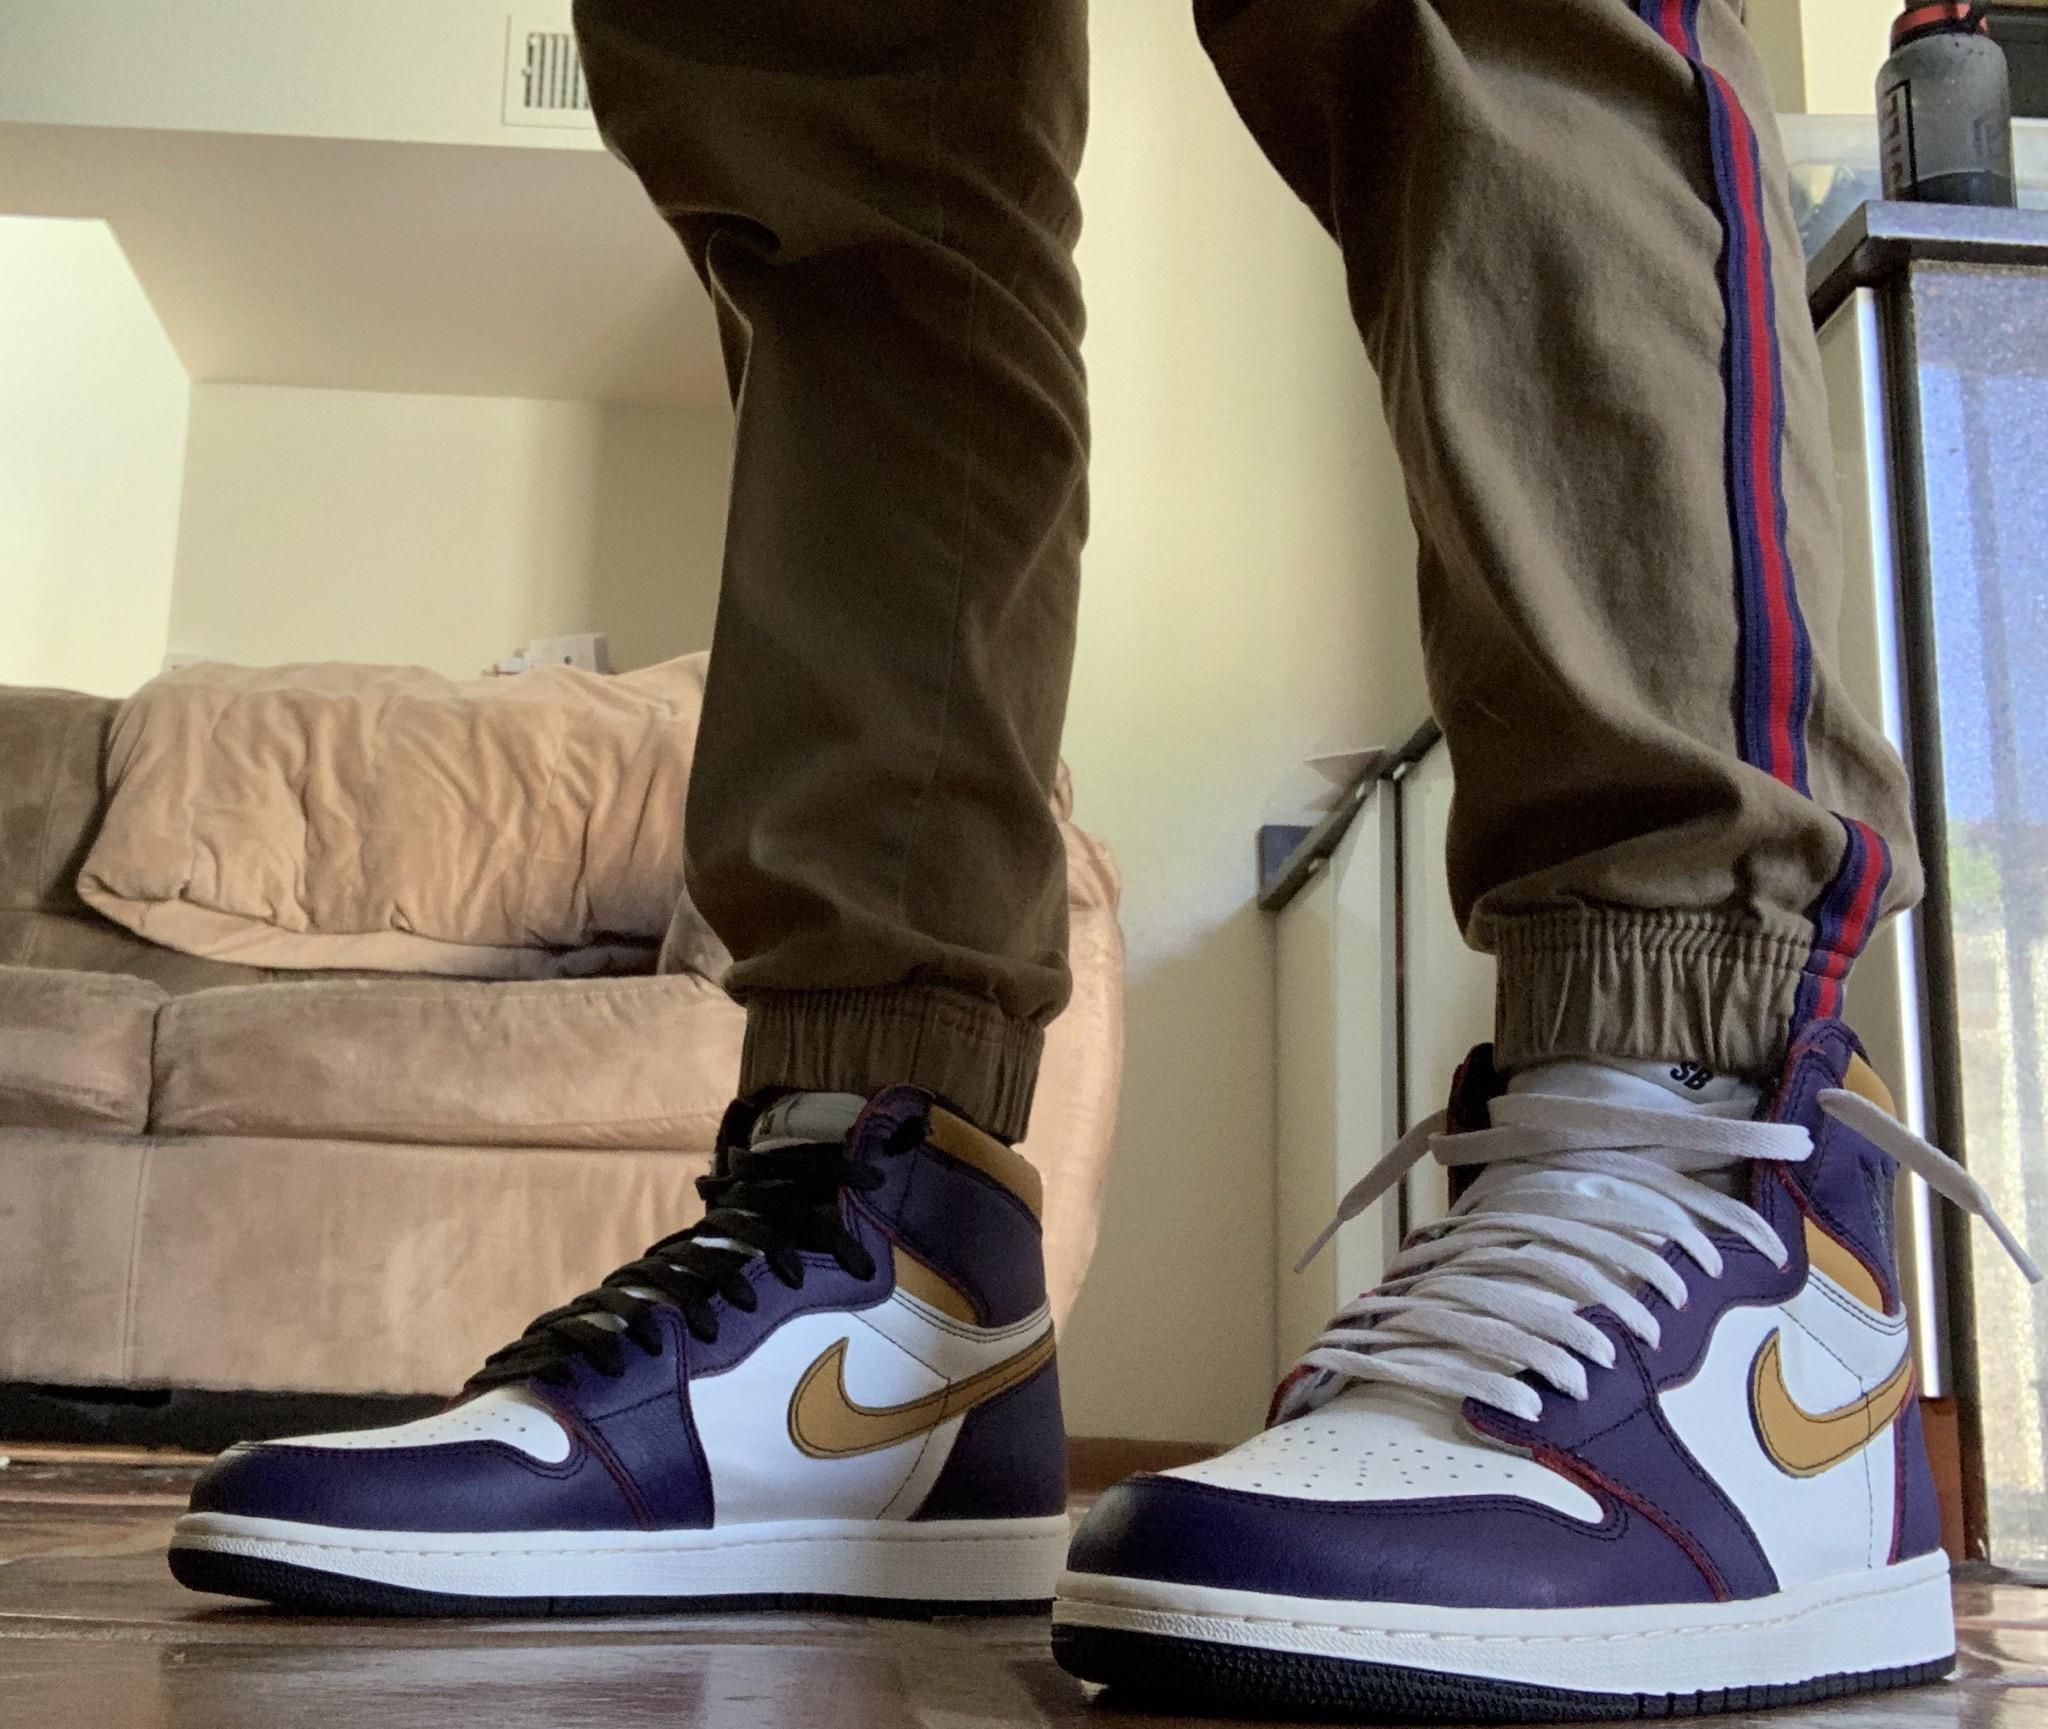 La To Chicago On Feet Air Jordans Jordan 1 Sneakers Nike